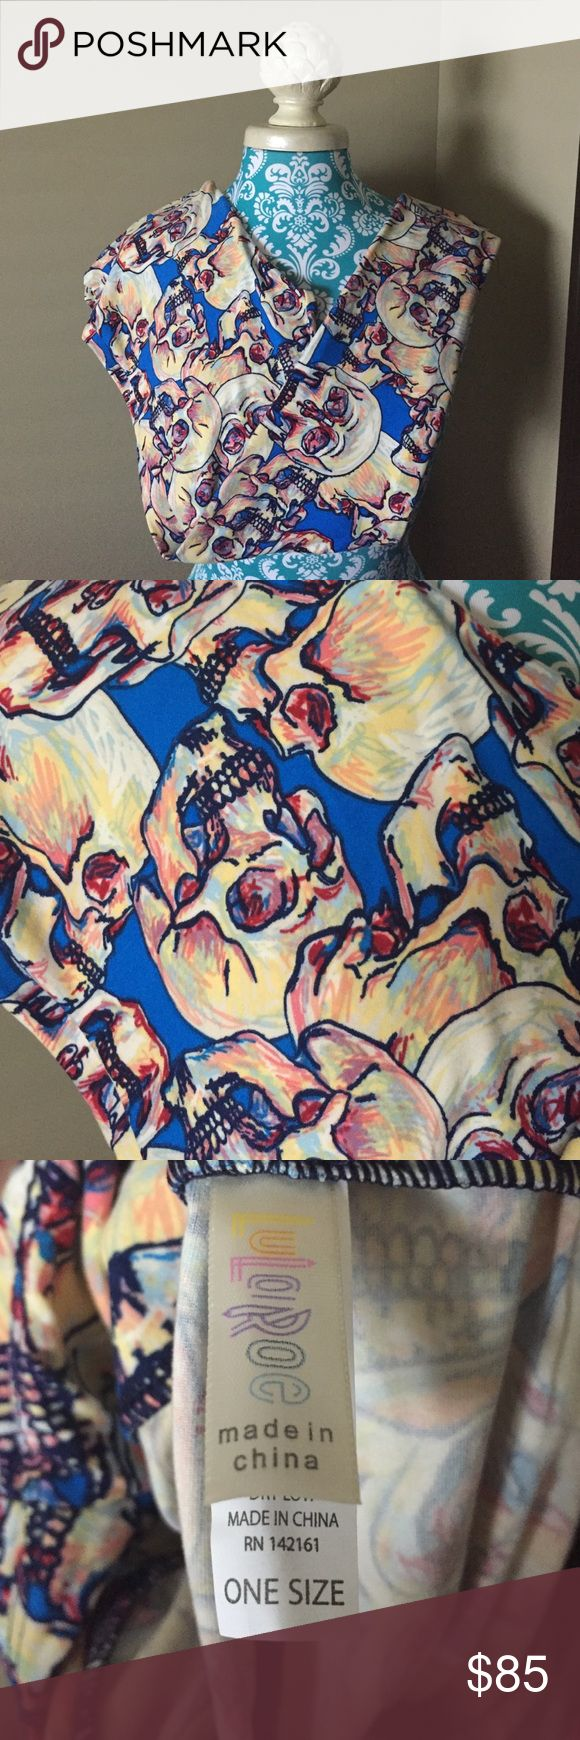 OS LuLaRoe Halloween Skeleton Leggings **UNICORN** Brand New LuLaRoe Skeleton Leggings. The colors are so VIBRANT and beautiful! The background is a bright blue, and the skeletons are hues of cream, yellow, pink, red, and blue. You don't want to miss these beauties!!! They are PERFECT for Halloween! 💀👻💀 *CROSS POSTED* I will ship out next day! LuLaRoe Pants Leggings